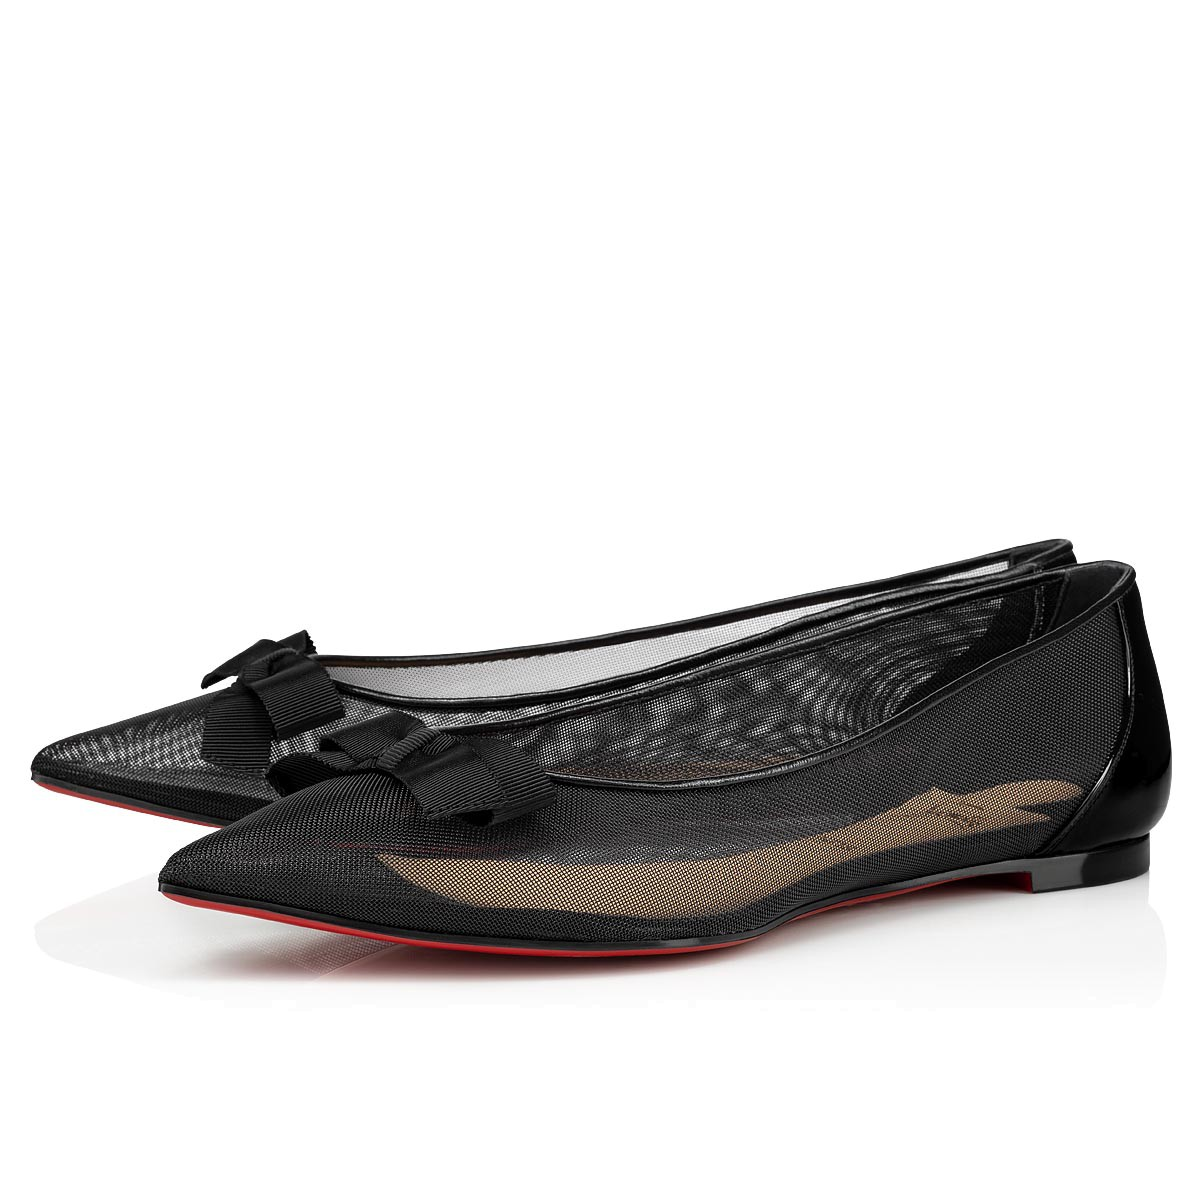 Shoes - Follies Rete Nodo - Christian Louboutin